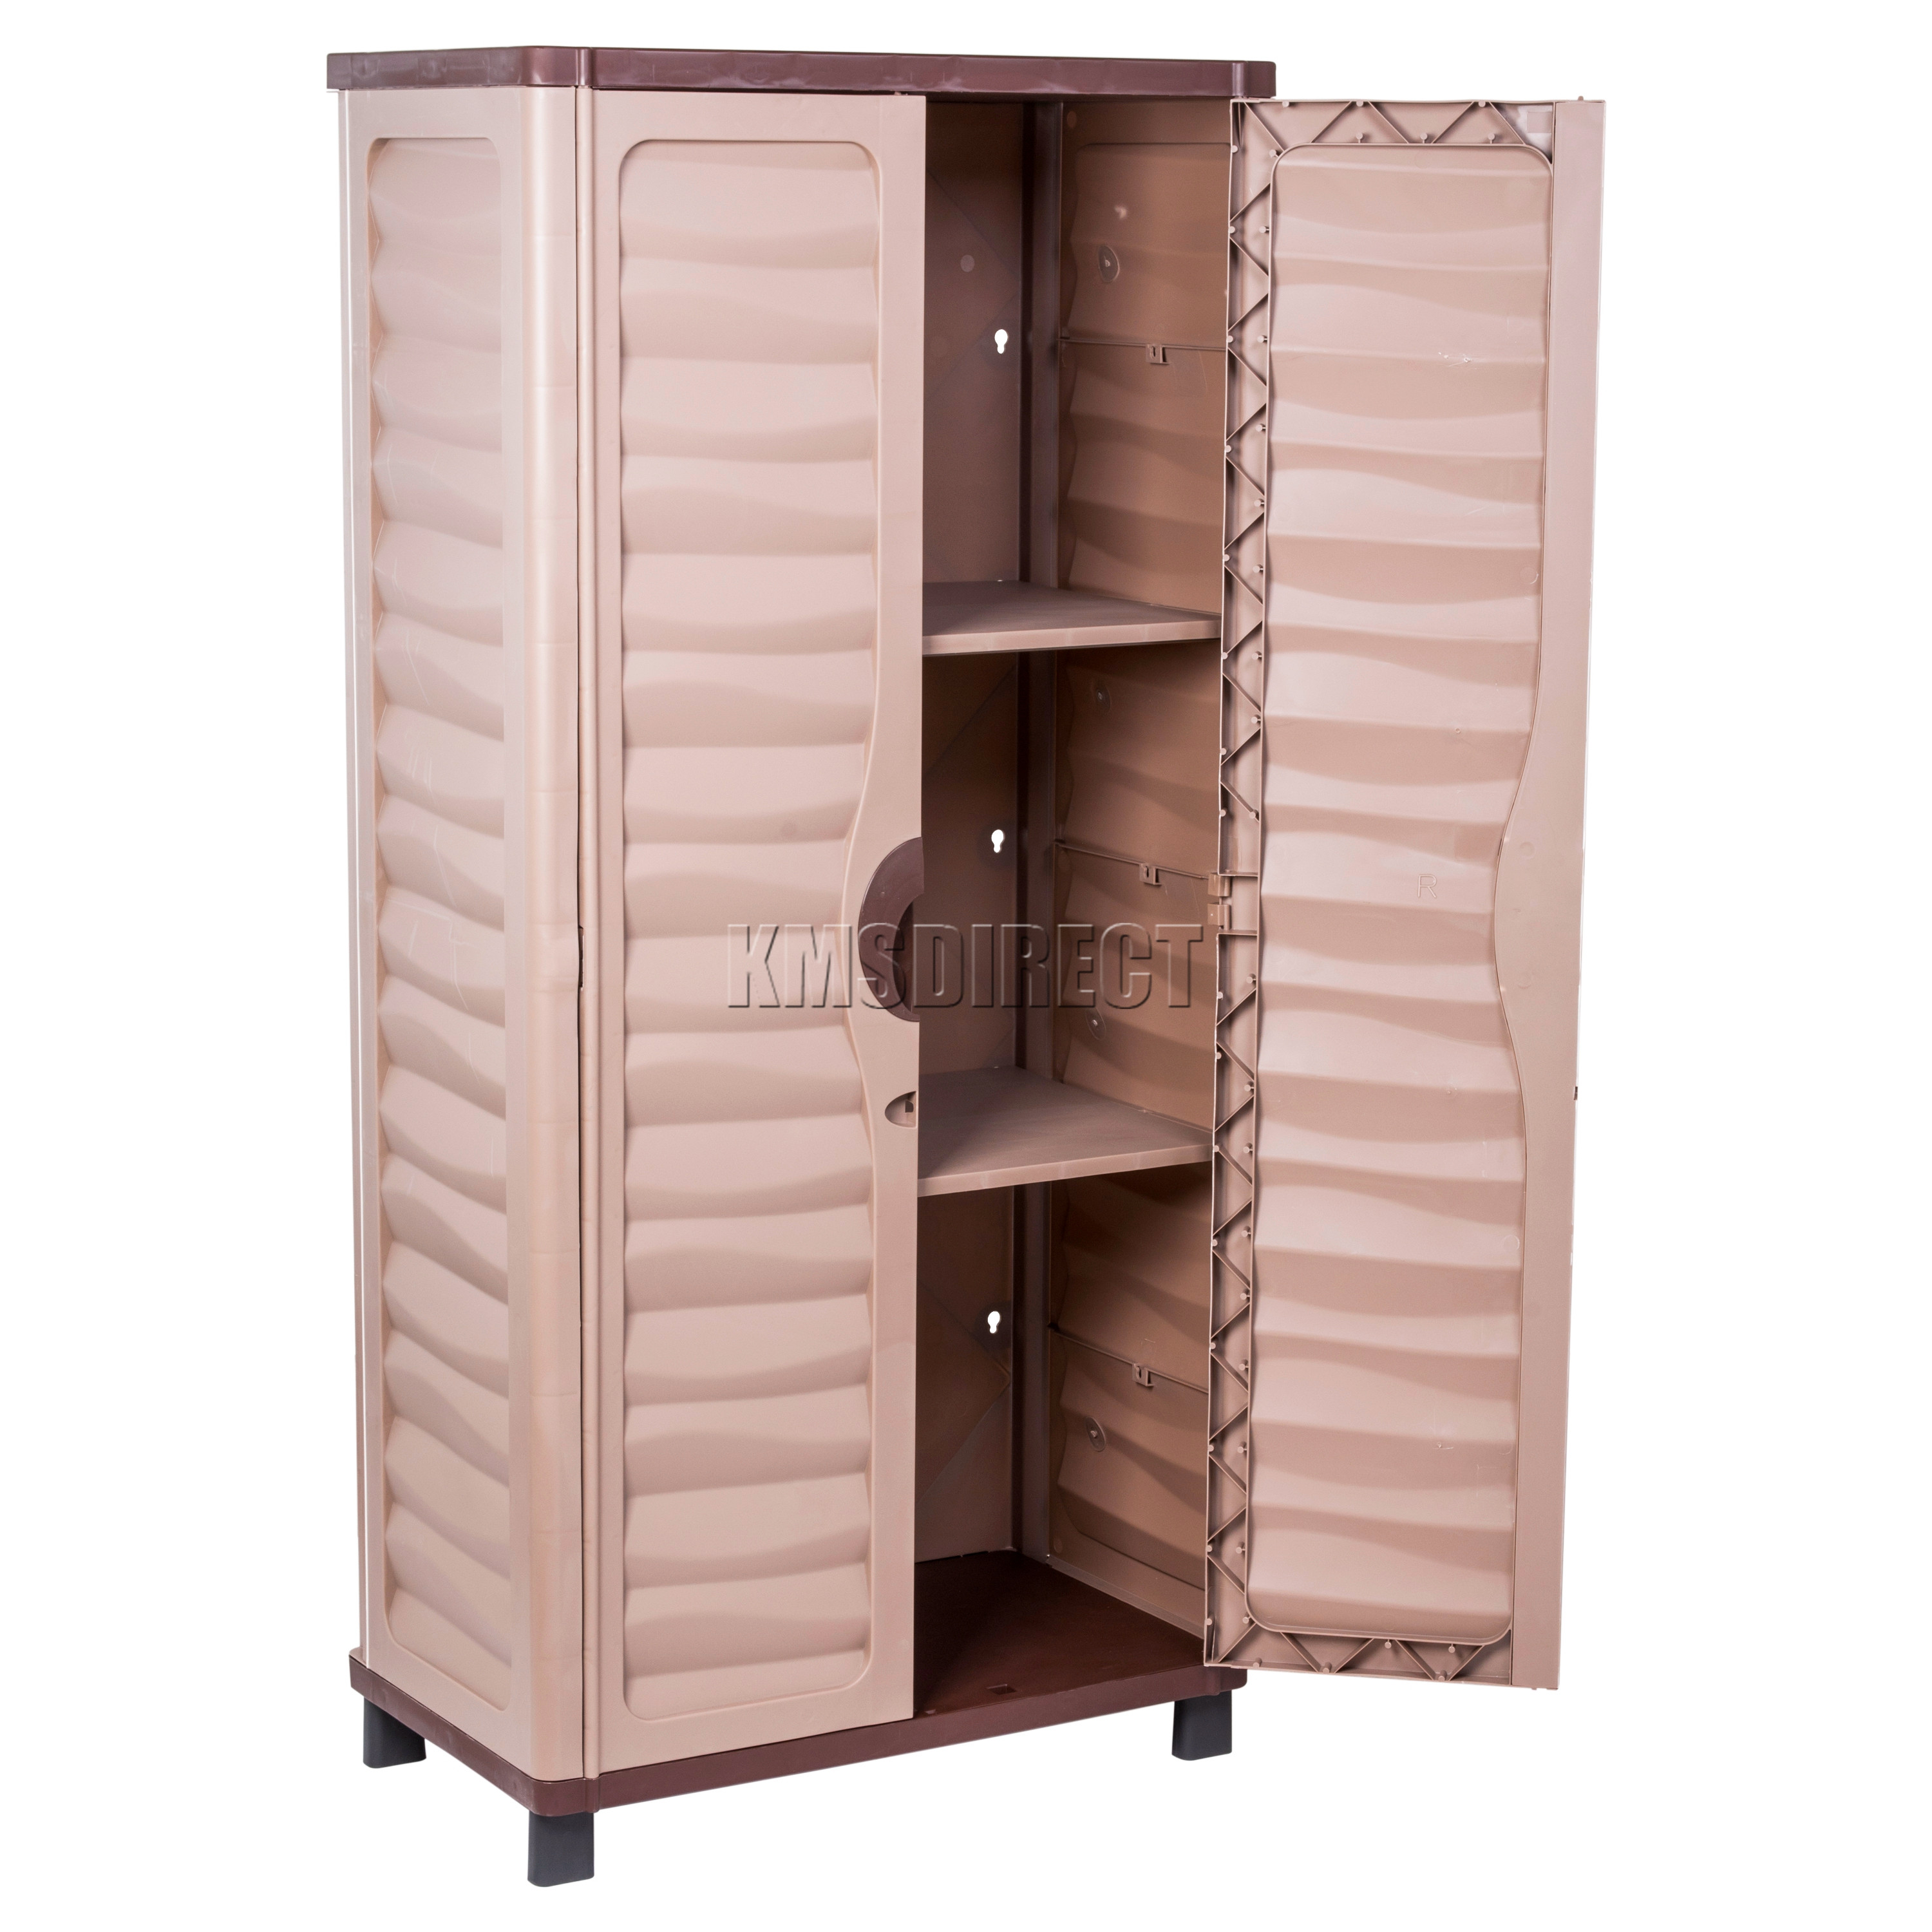 Best ideas about Outdoor Storage Cabinets With Shelves . Save or Pin Starplast Outdoor Plastic Garden Utility Cabinet With 2 Now.